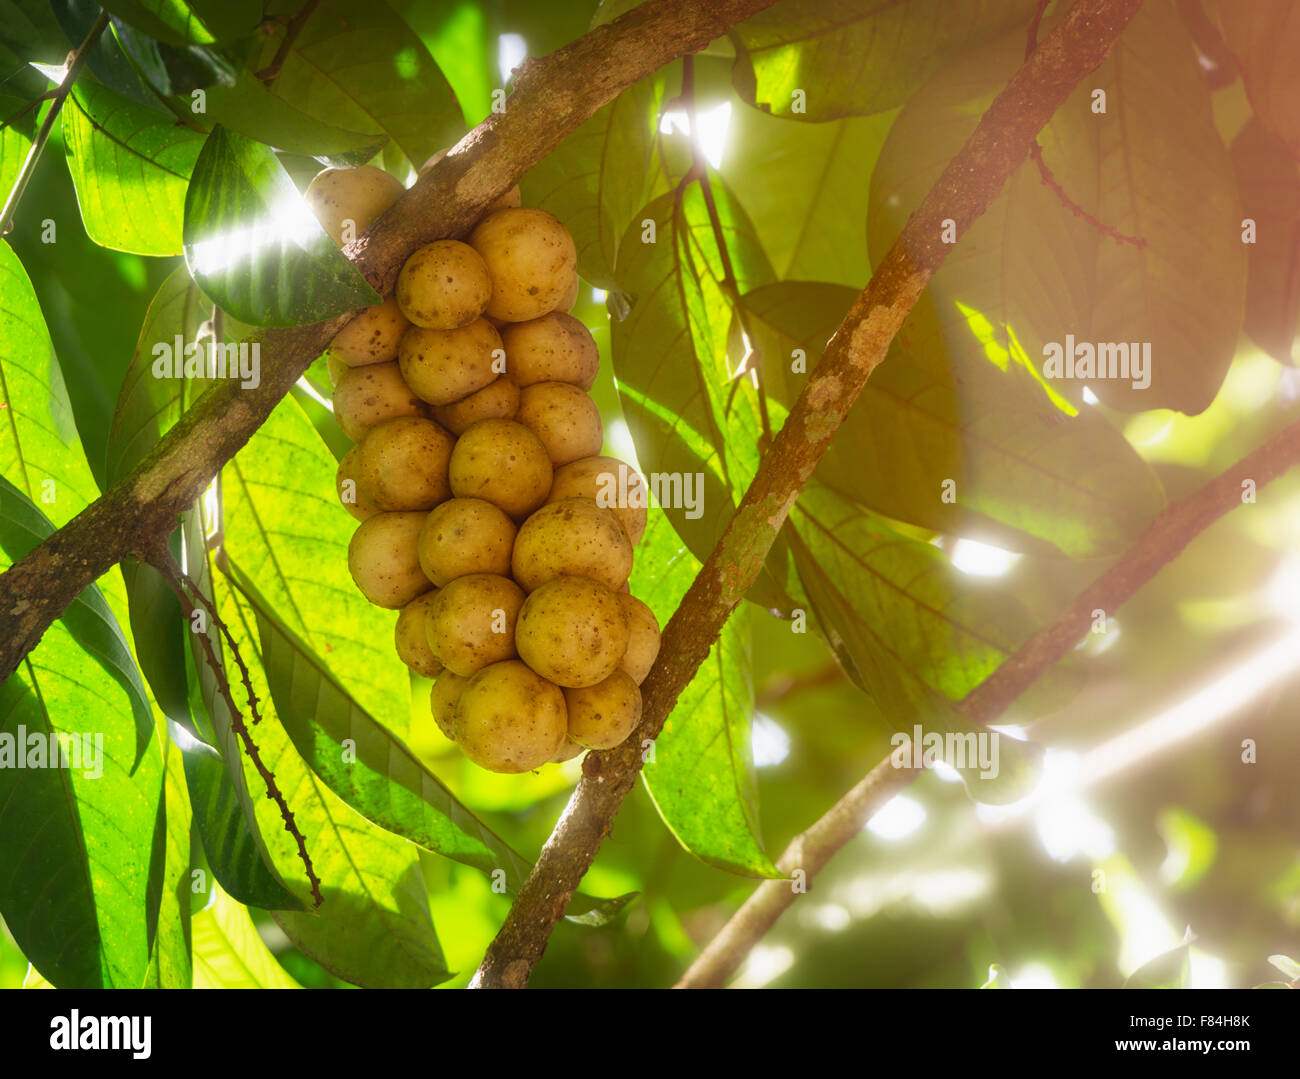 Longkong fruit from Thailand. A delicious sweet tasting fruit hanging from a tree branch. - Stock Image